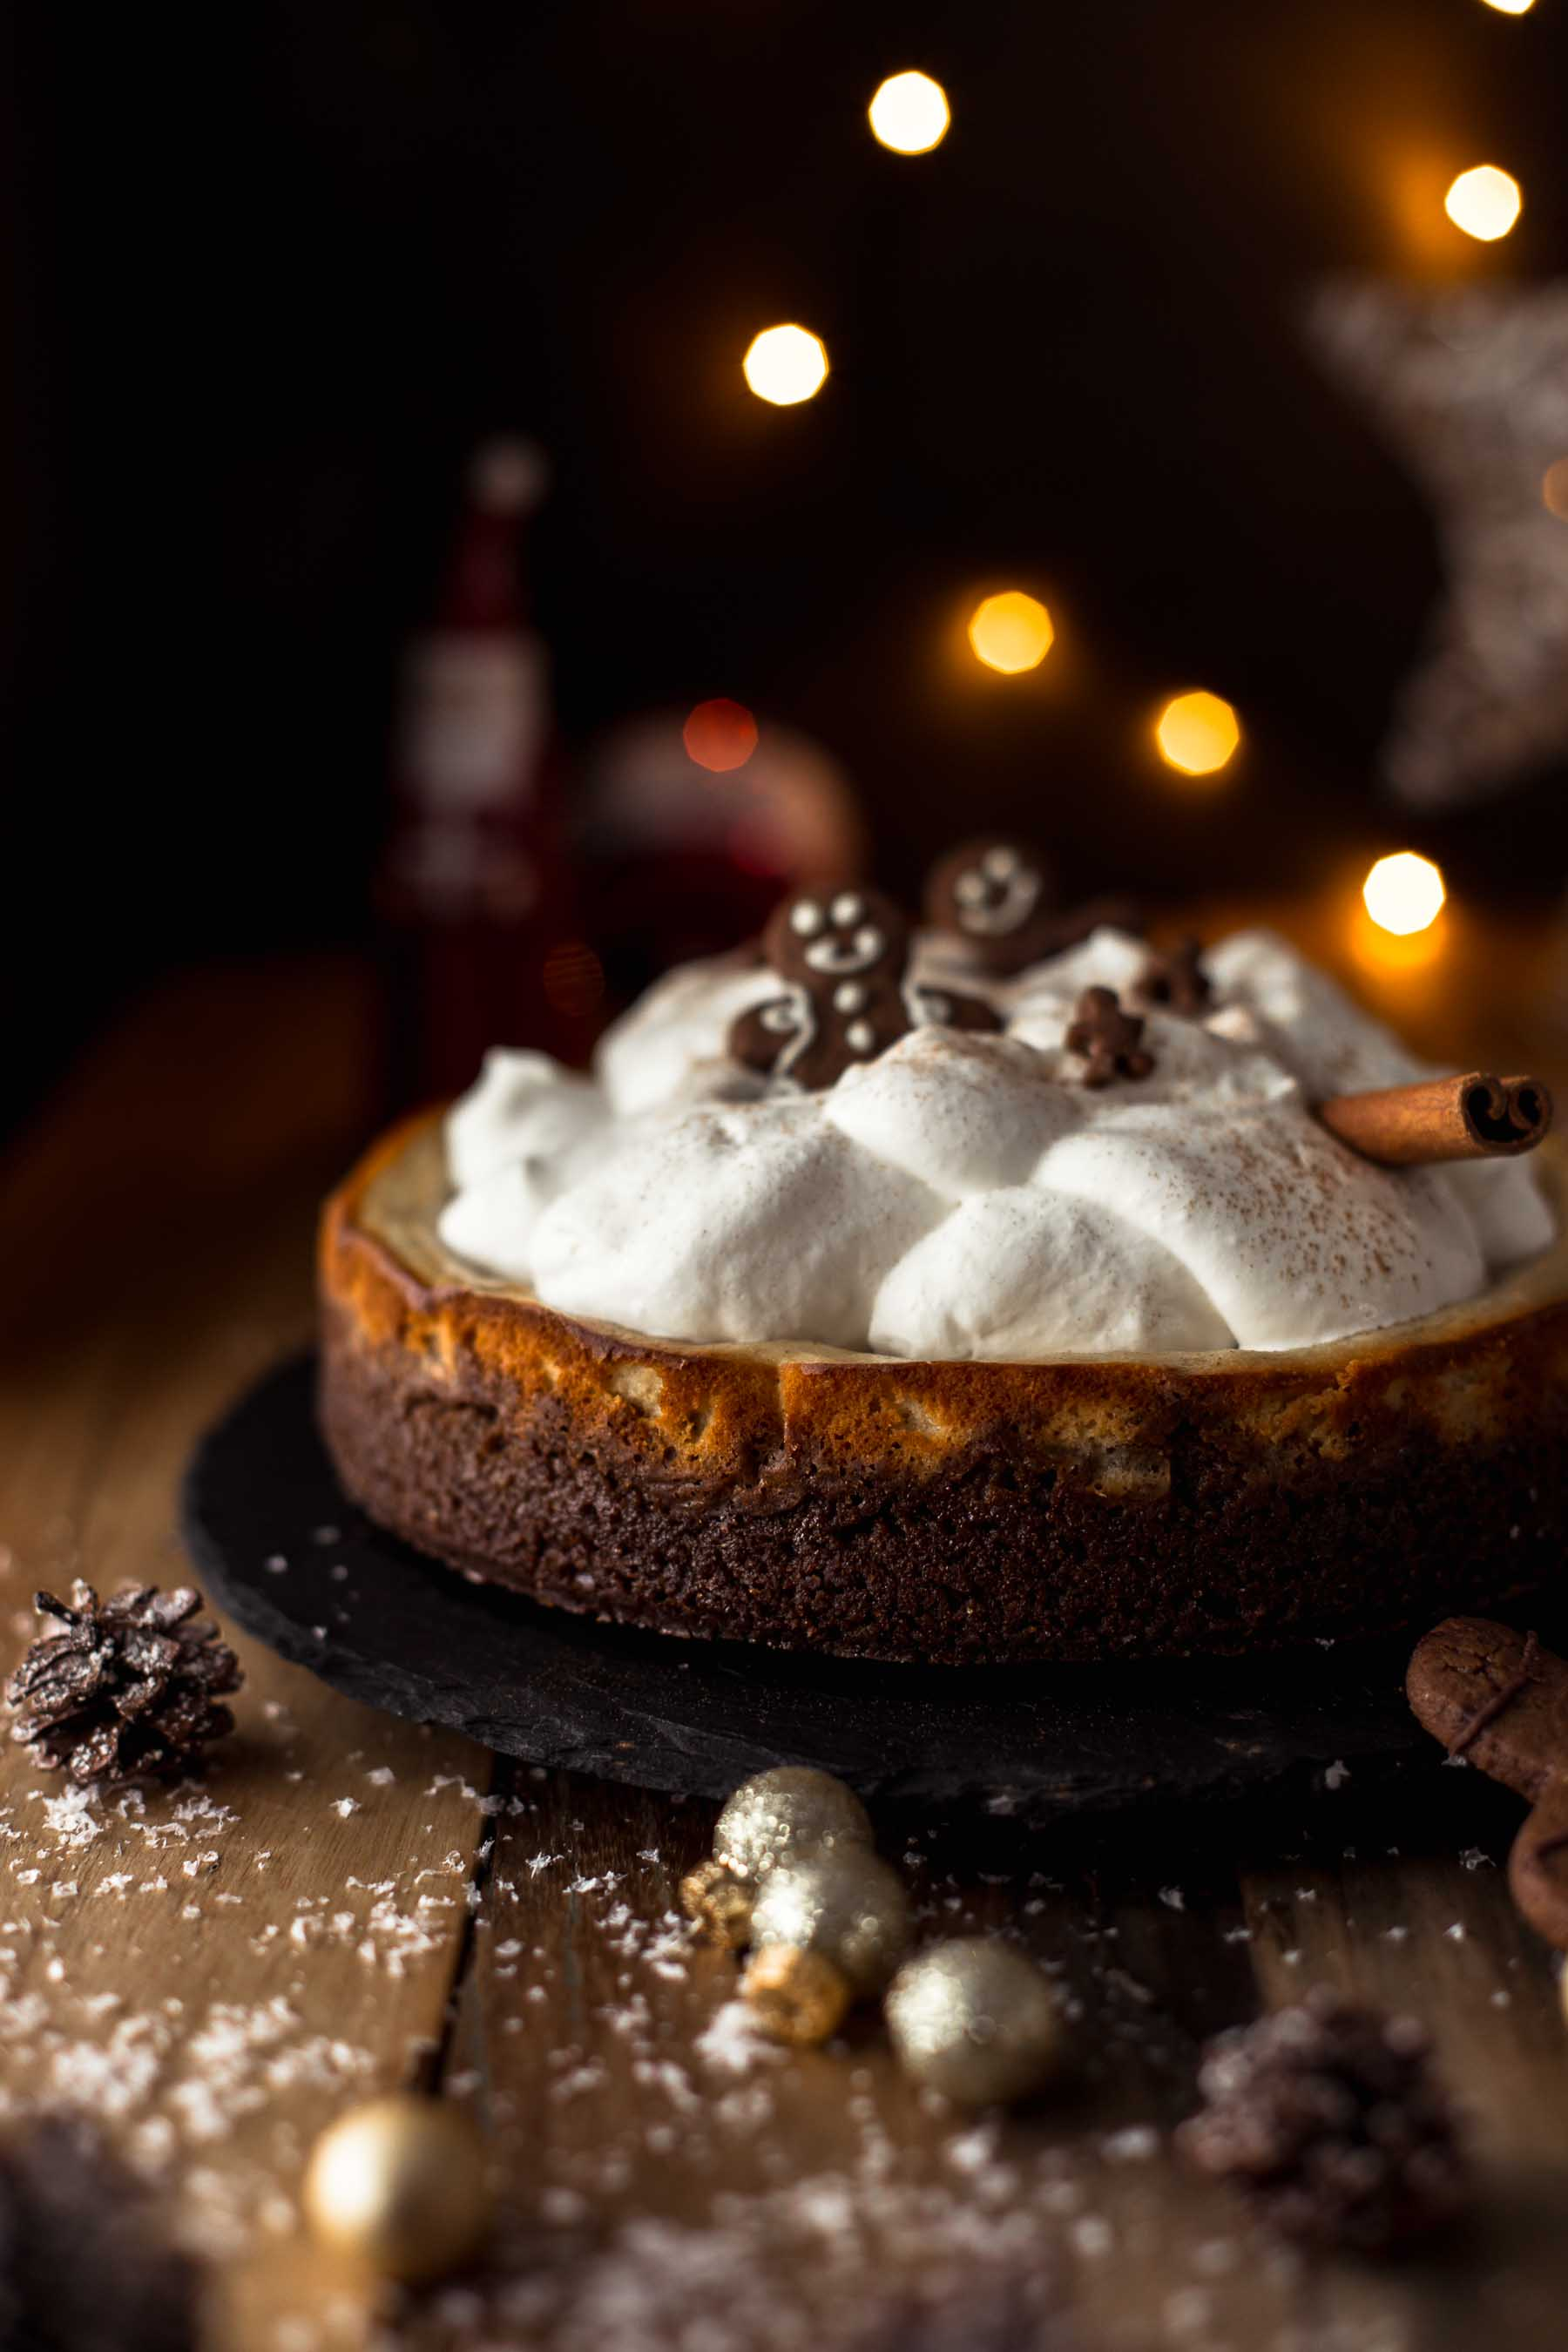 Baked Eggnog Cheesecake with Gingerbread Crust